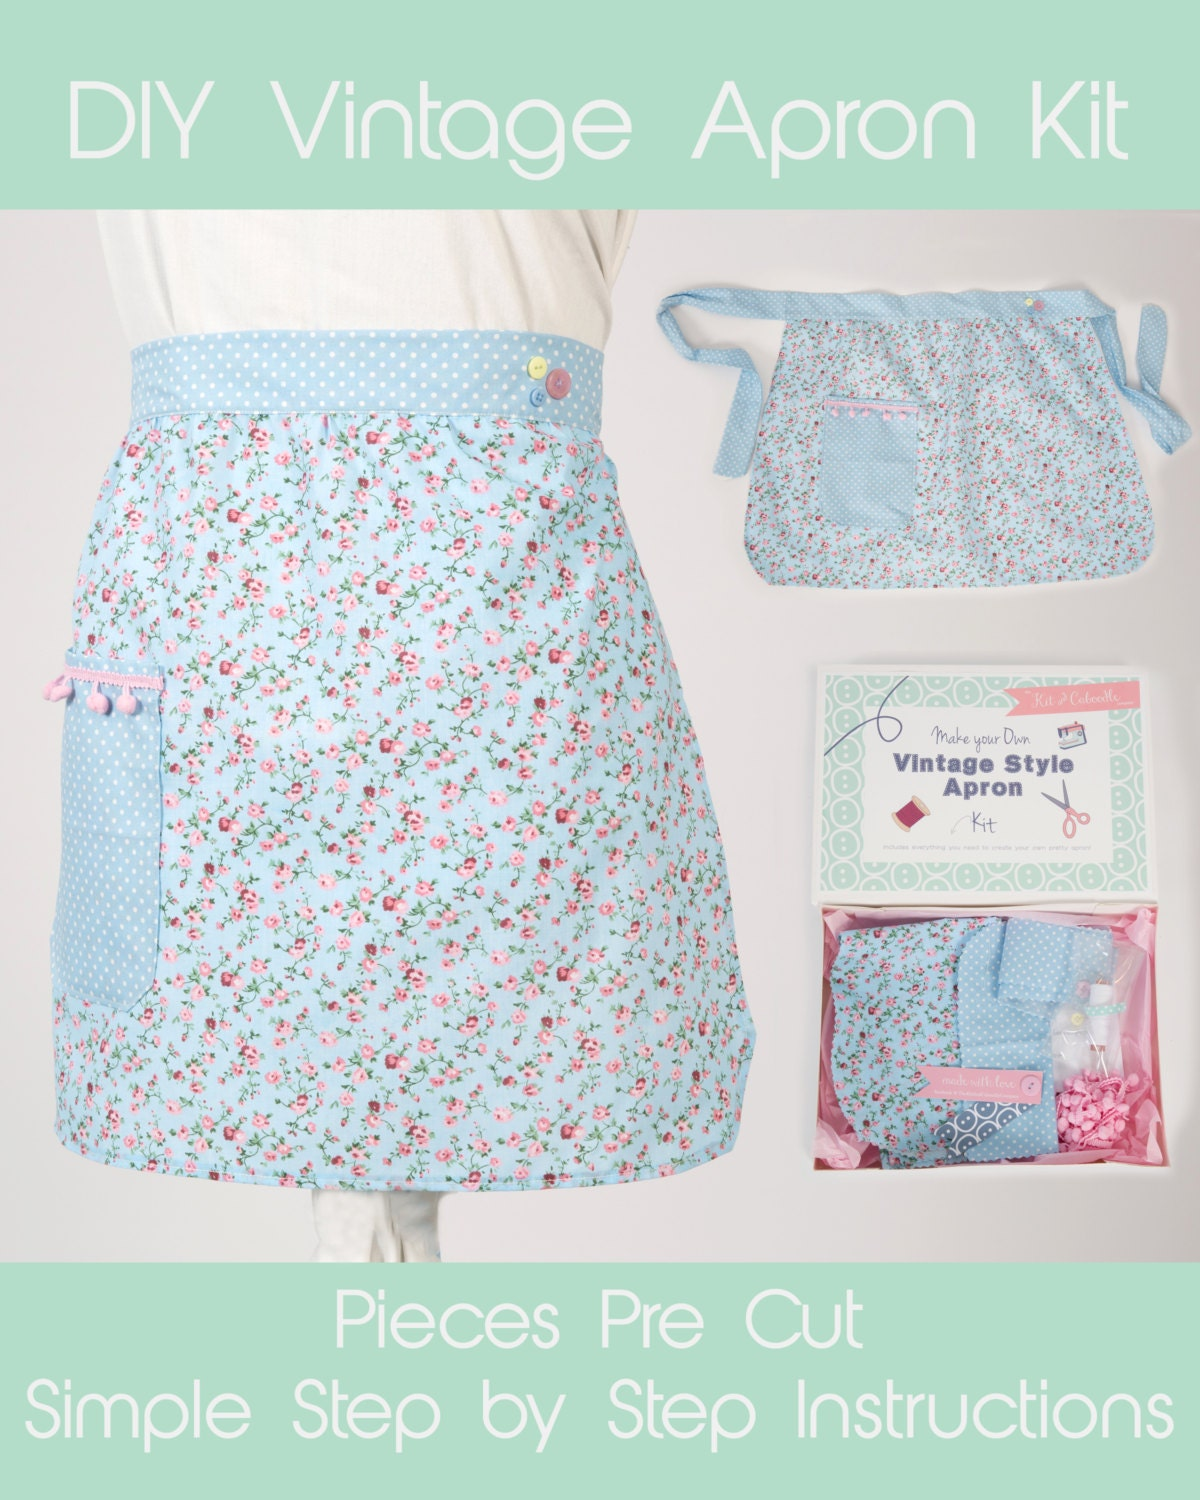 Vintage Style Apron Kit Sew Your Own Pinny Learn To Sew